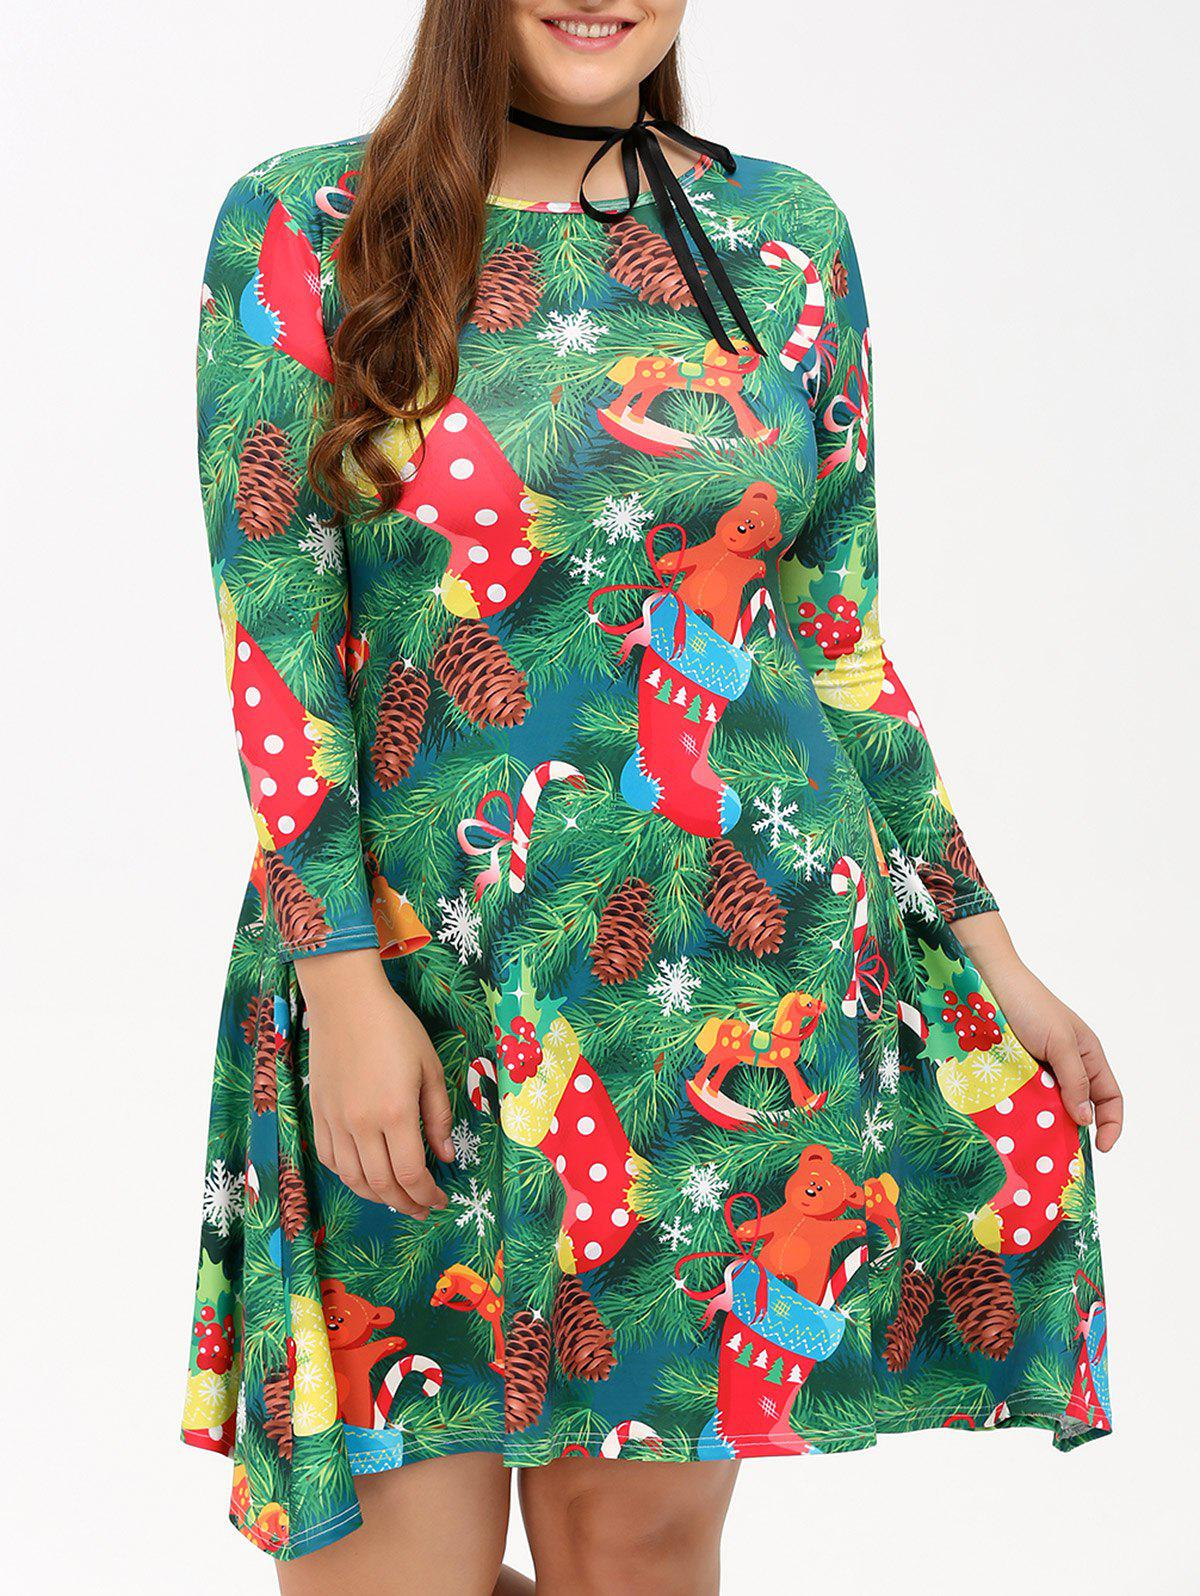 Plus Size Christmas Tree Print Party DressWOMEN<br><br>Size: 2XL; Color: GREEN; Style: Cute; Material: Polyester; Silhouette: A-Line; Dresses Length: Knee-Length; Neckline: Jewel Neck; Sleeve Length: 3/4 Length Sleeves; Pattern Type: Print; With Belt: No; Season: Fall,Spring; Weight: 0.293kg; Package Contents: 1 x Dress;